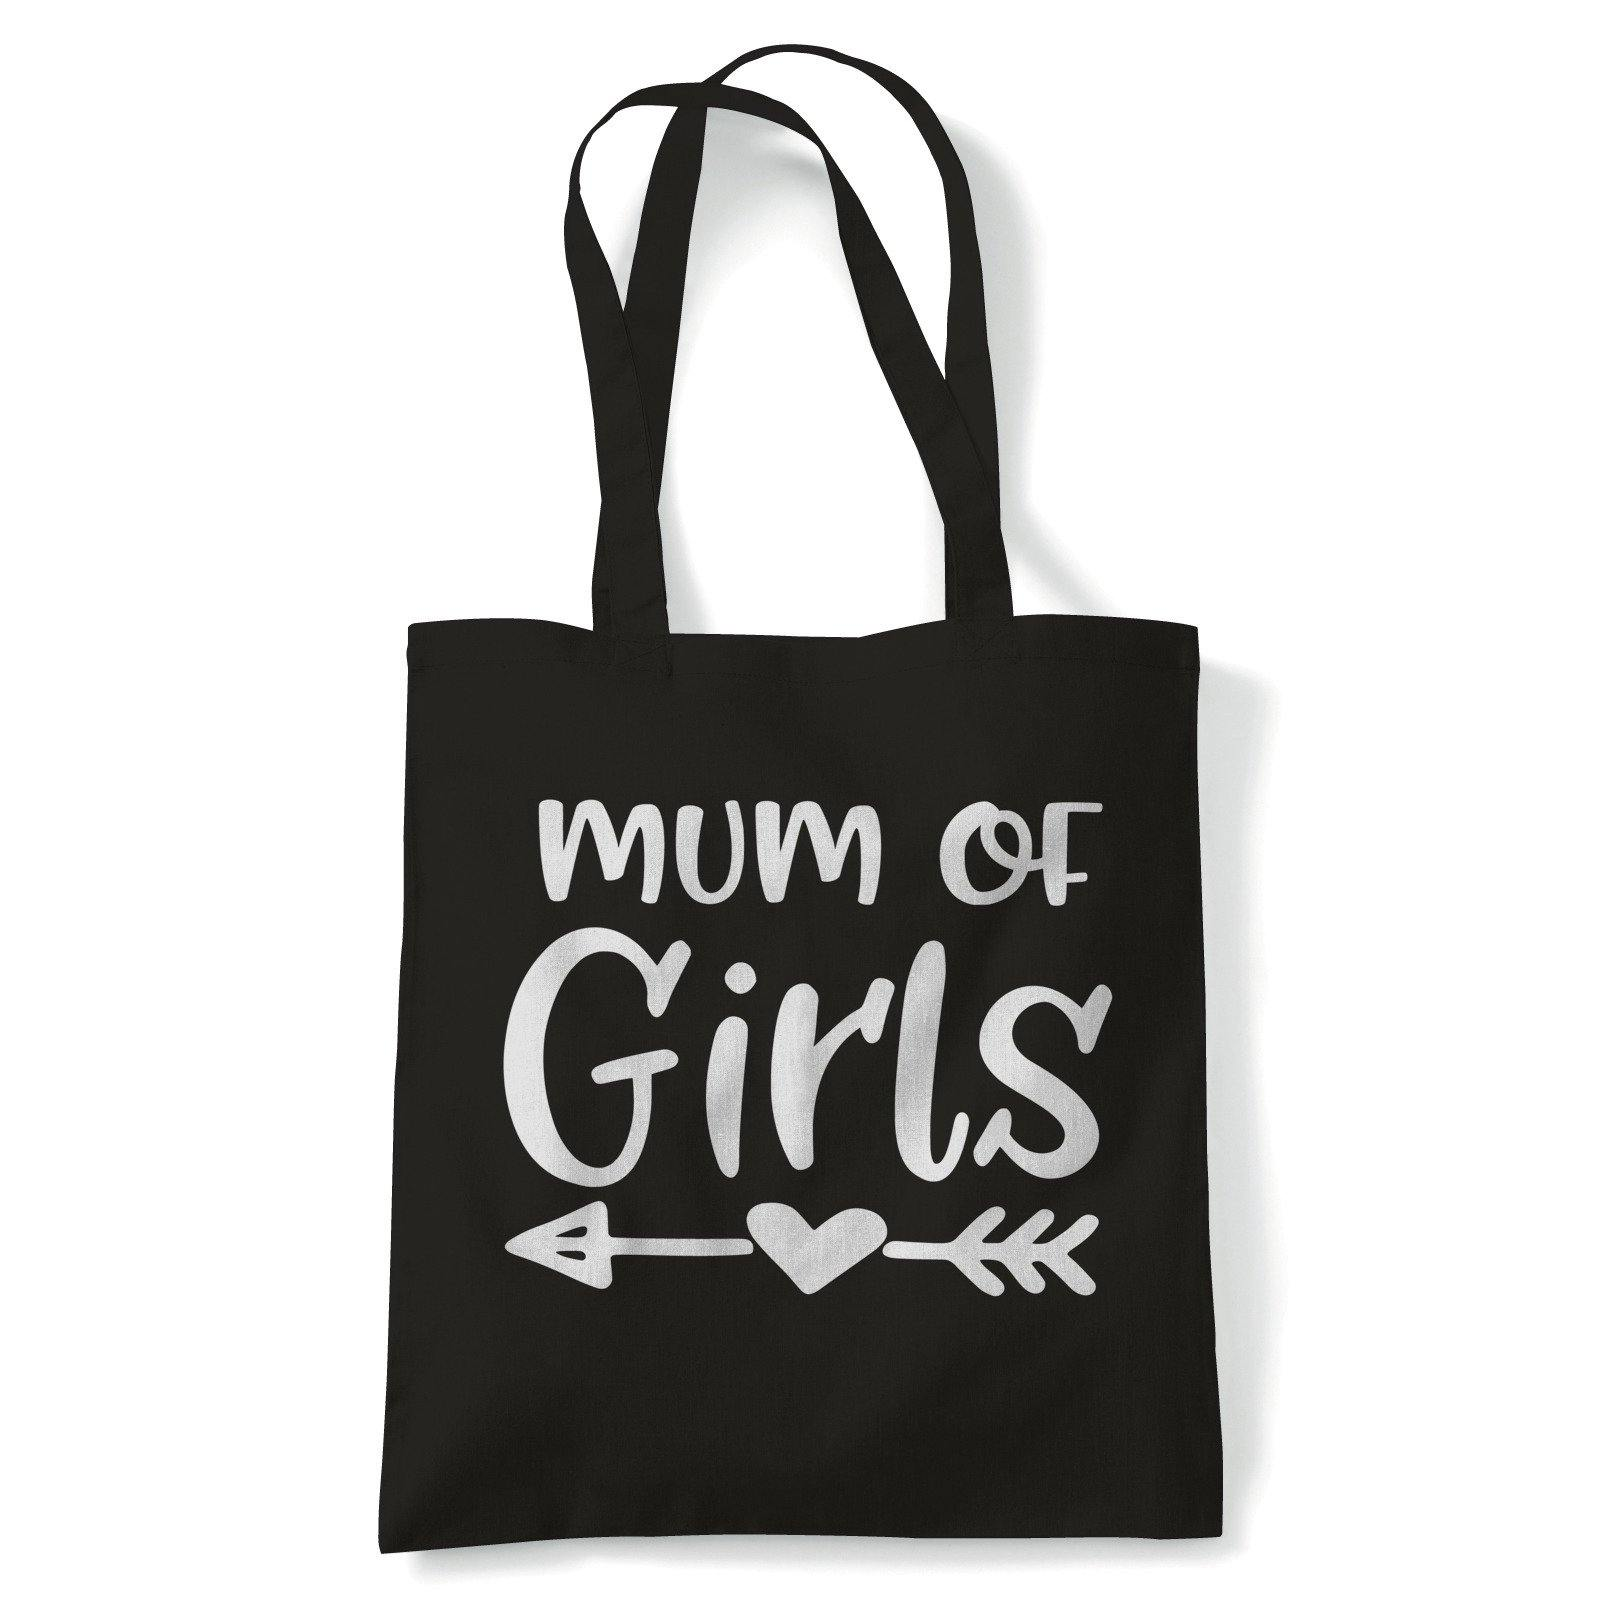 Mum of Girls Arrow Heart Tote | Reusable Shopping Cotton Canvas Long Handled Natural Shopper Eco-Friendly Fashion | Gym Book Bag Birthday Present Gift Her | Multiple Colours Available